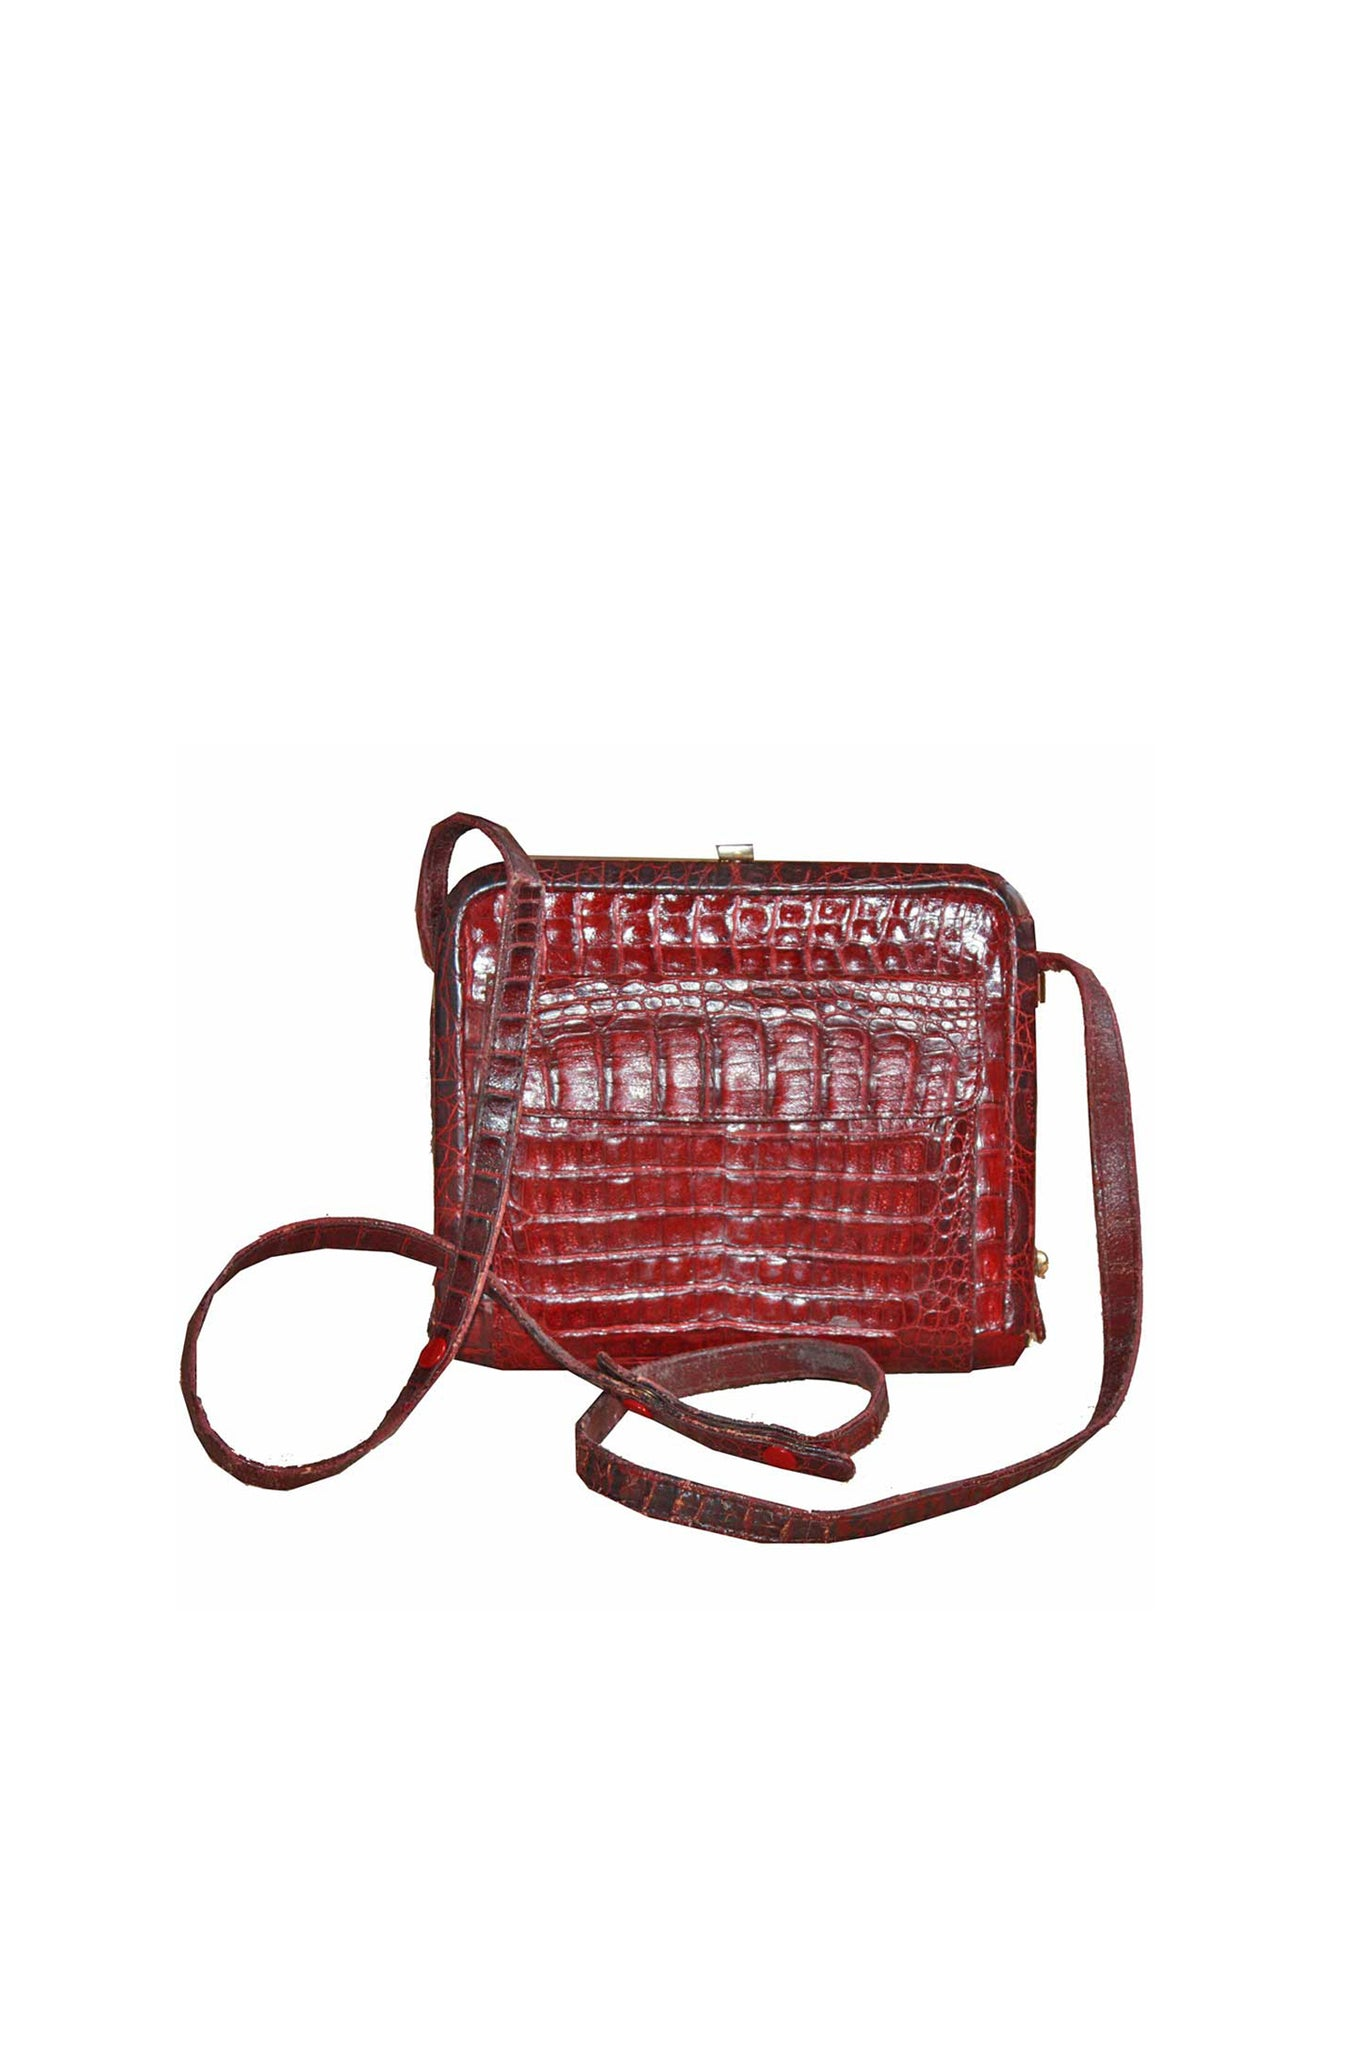 Vintage leather croc handbag - SoLovesVintage